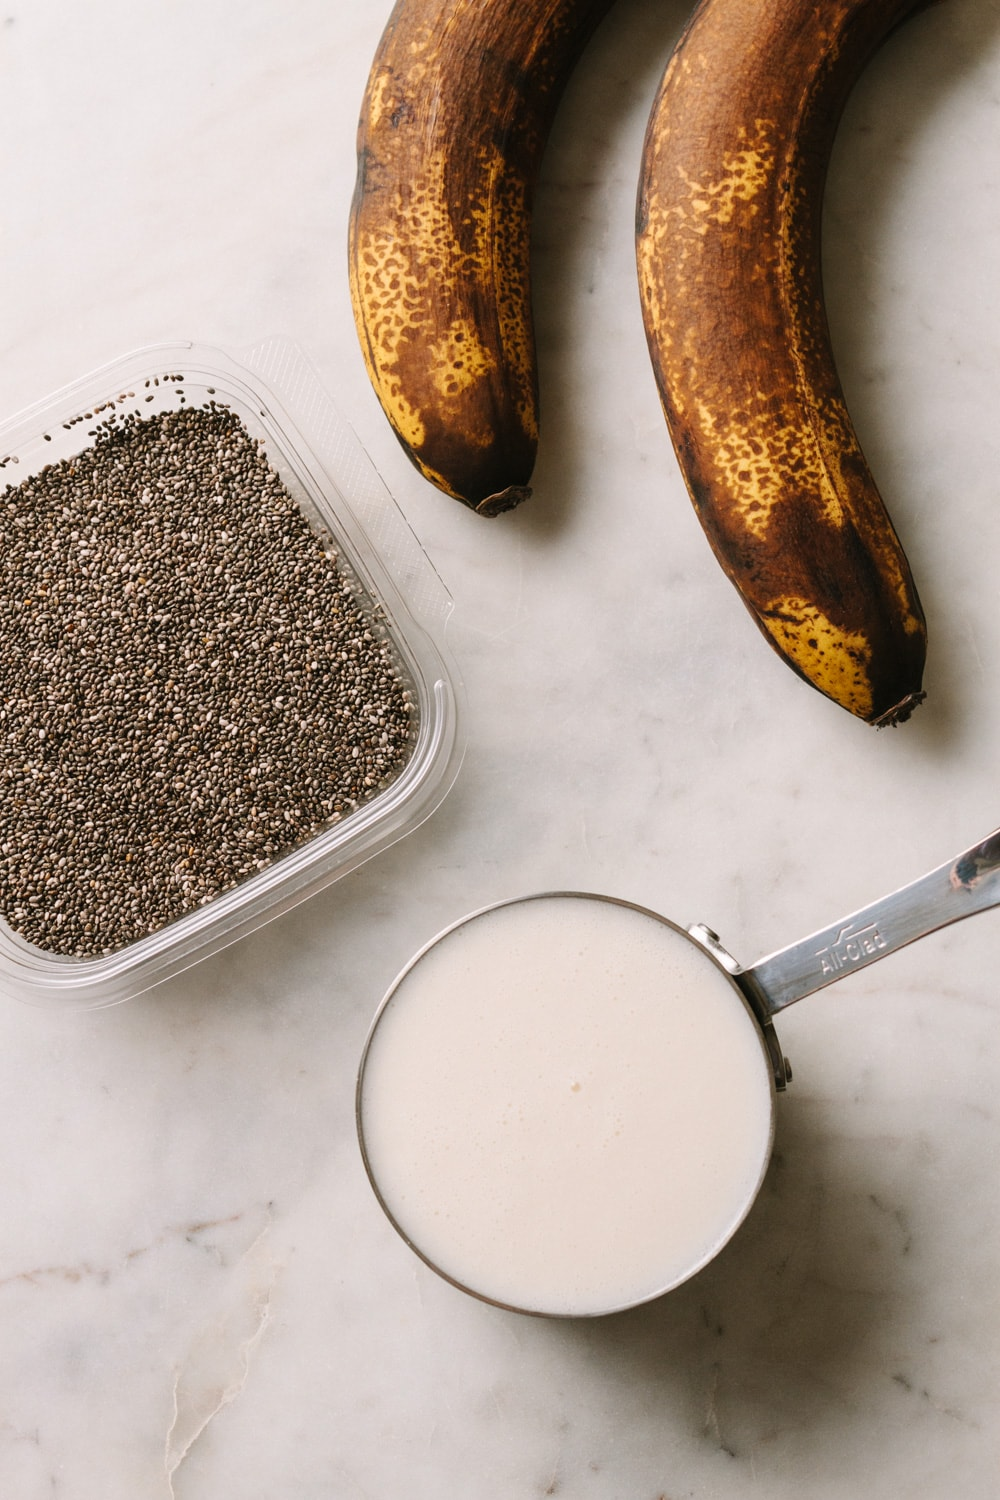 banana chia seed pudding ingredients